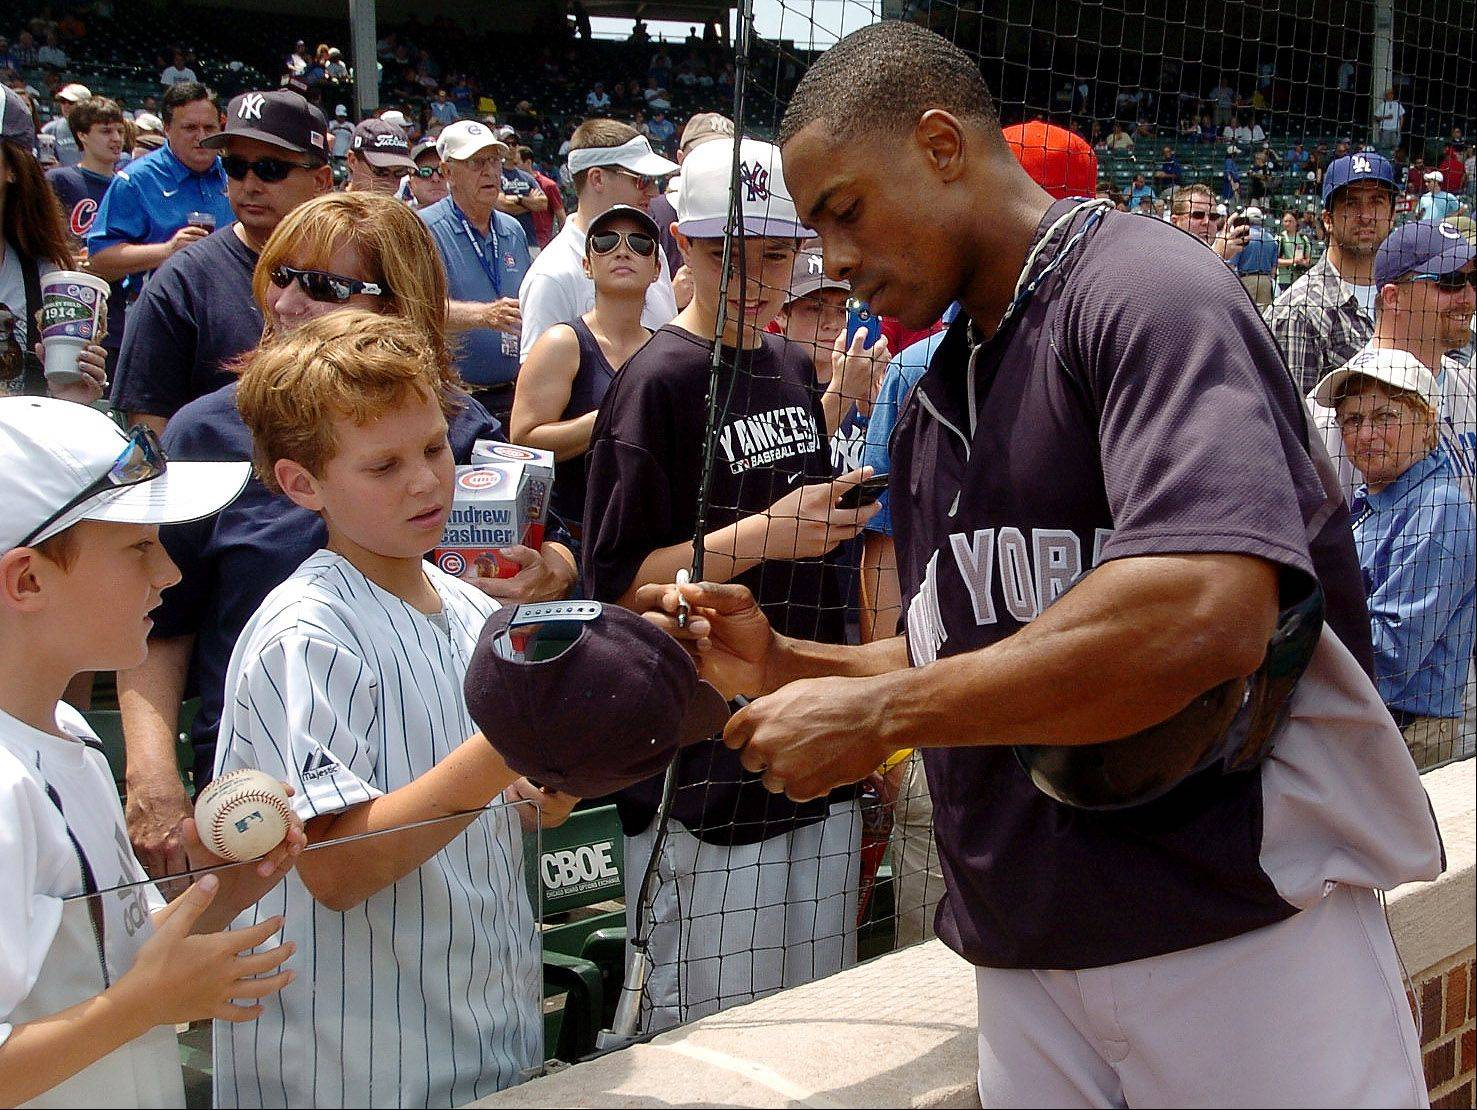 Curtis Granderson of the Yankees signs autographs for some youngsters before the Cubs game.